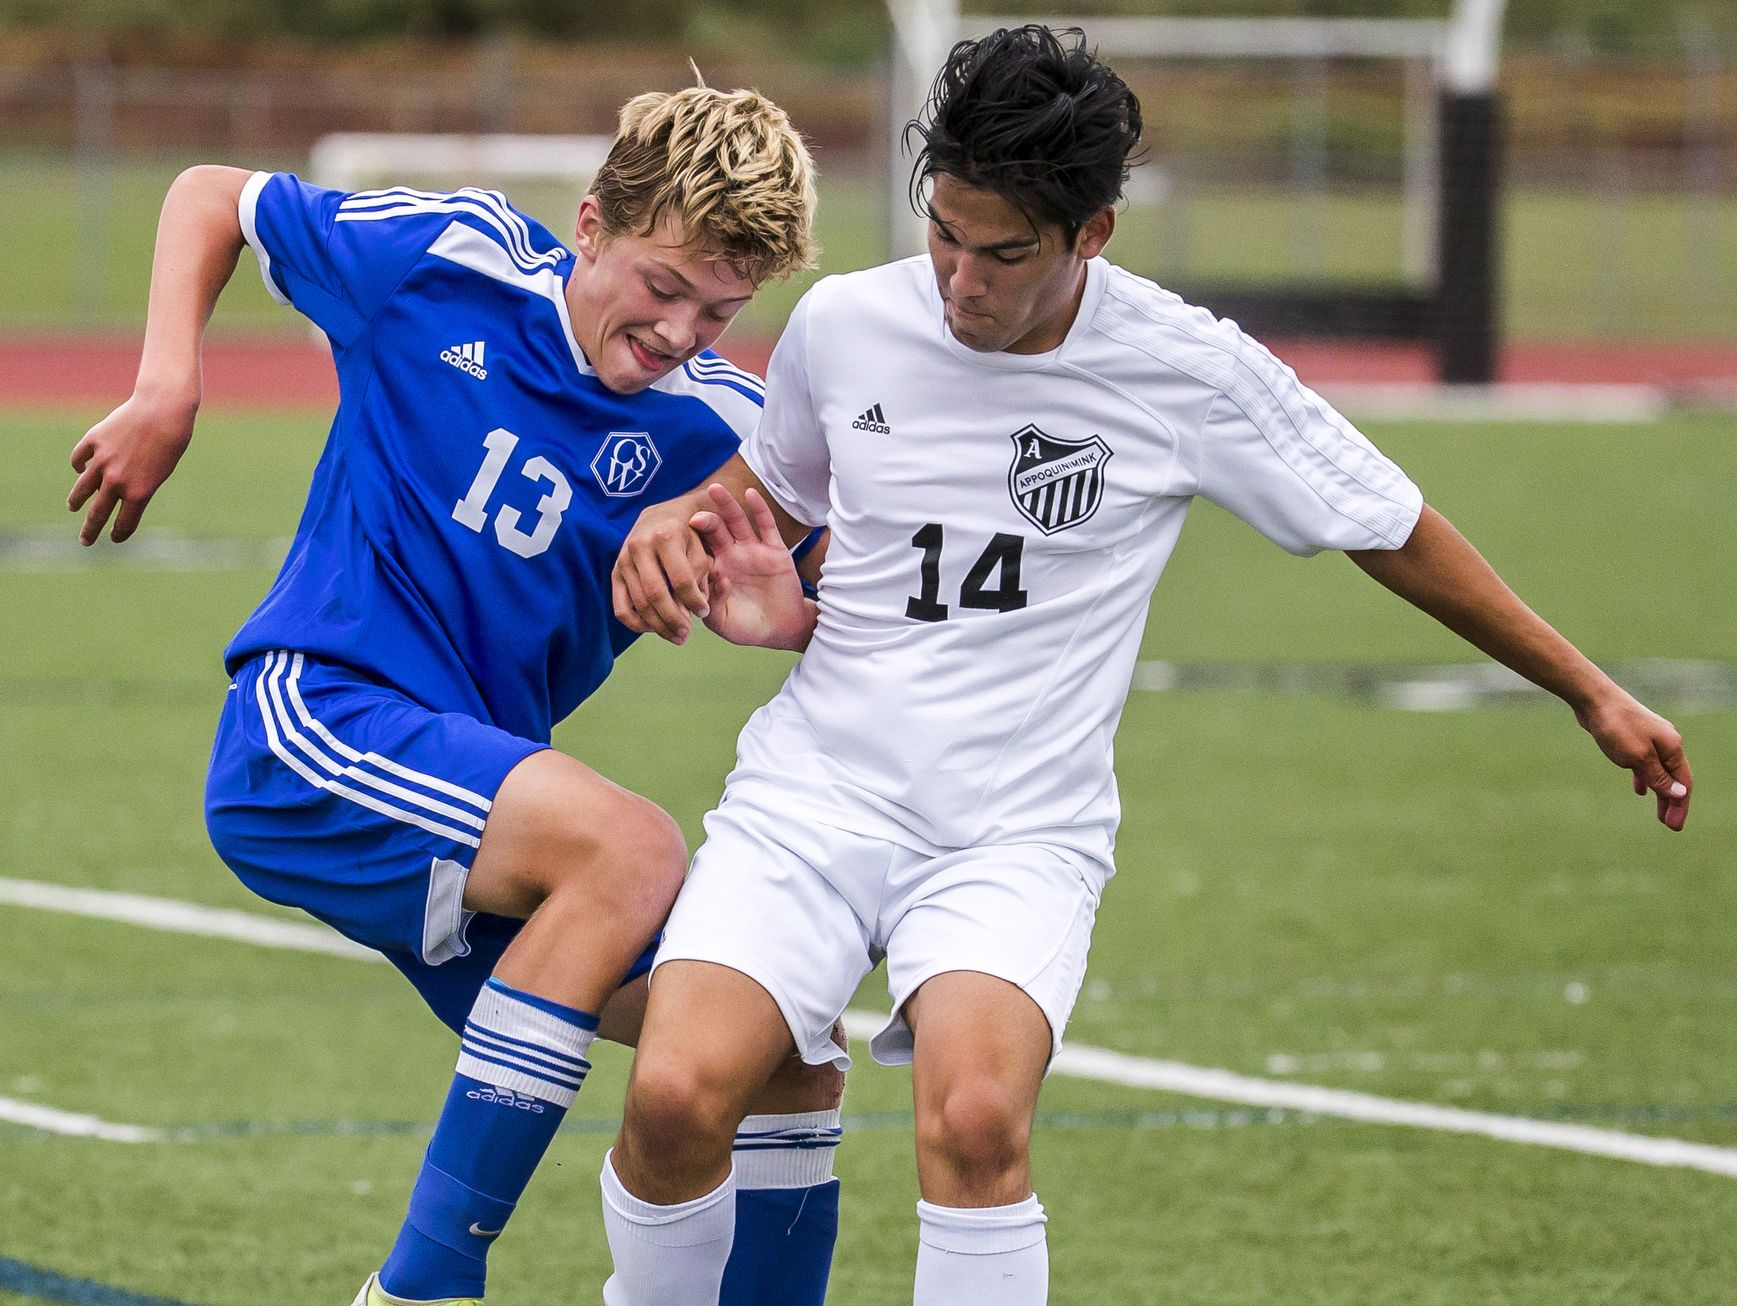 Charter's Graeme Newcombe (No. 13) fights the ball away from Appoquinimink's Jose Hilario (No. 14) in the second half of Appoquinimink's 1-0 win over Charter School of Wilmington at Appoquinimink High School in Middletown on Tuesday afternoon.